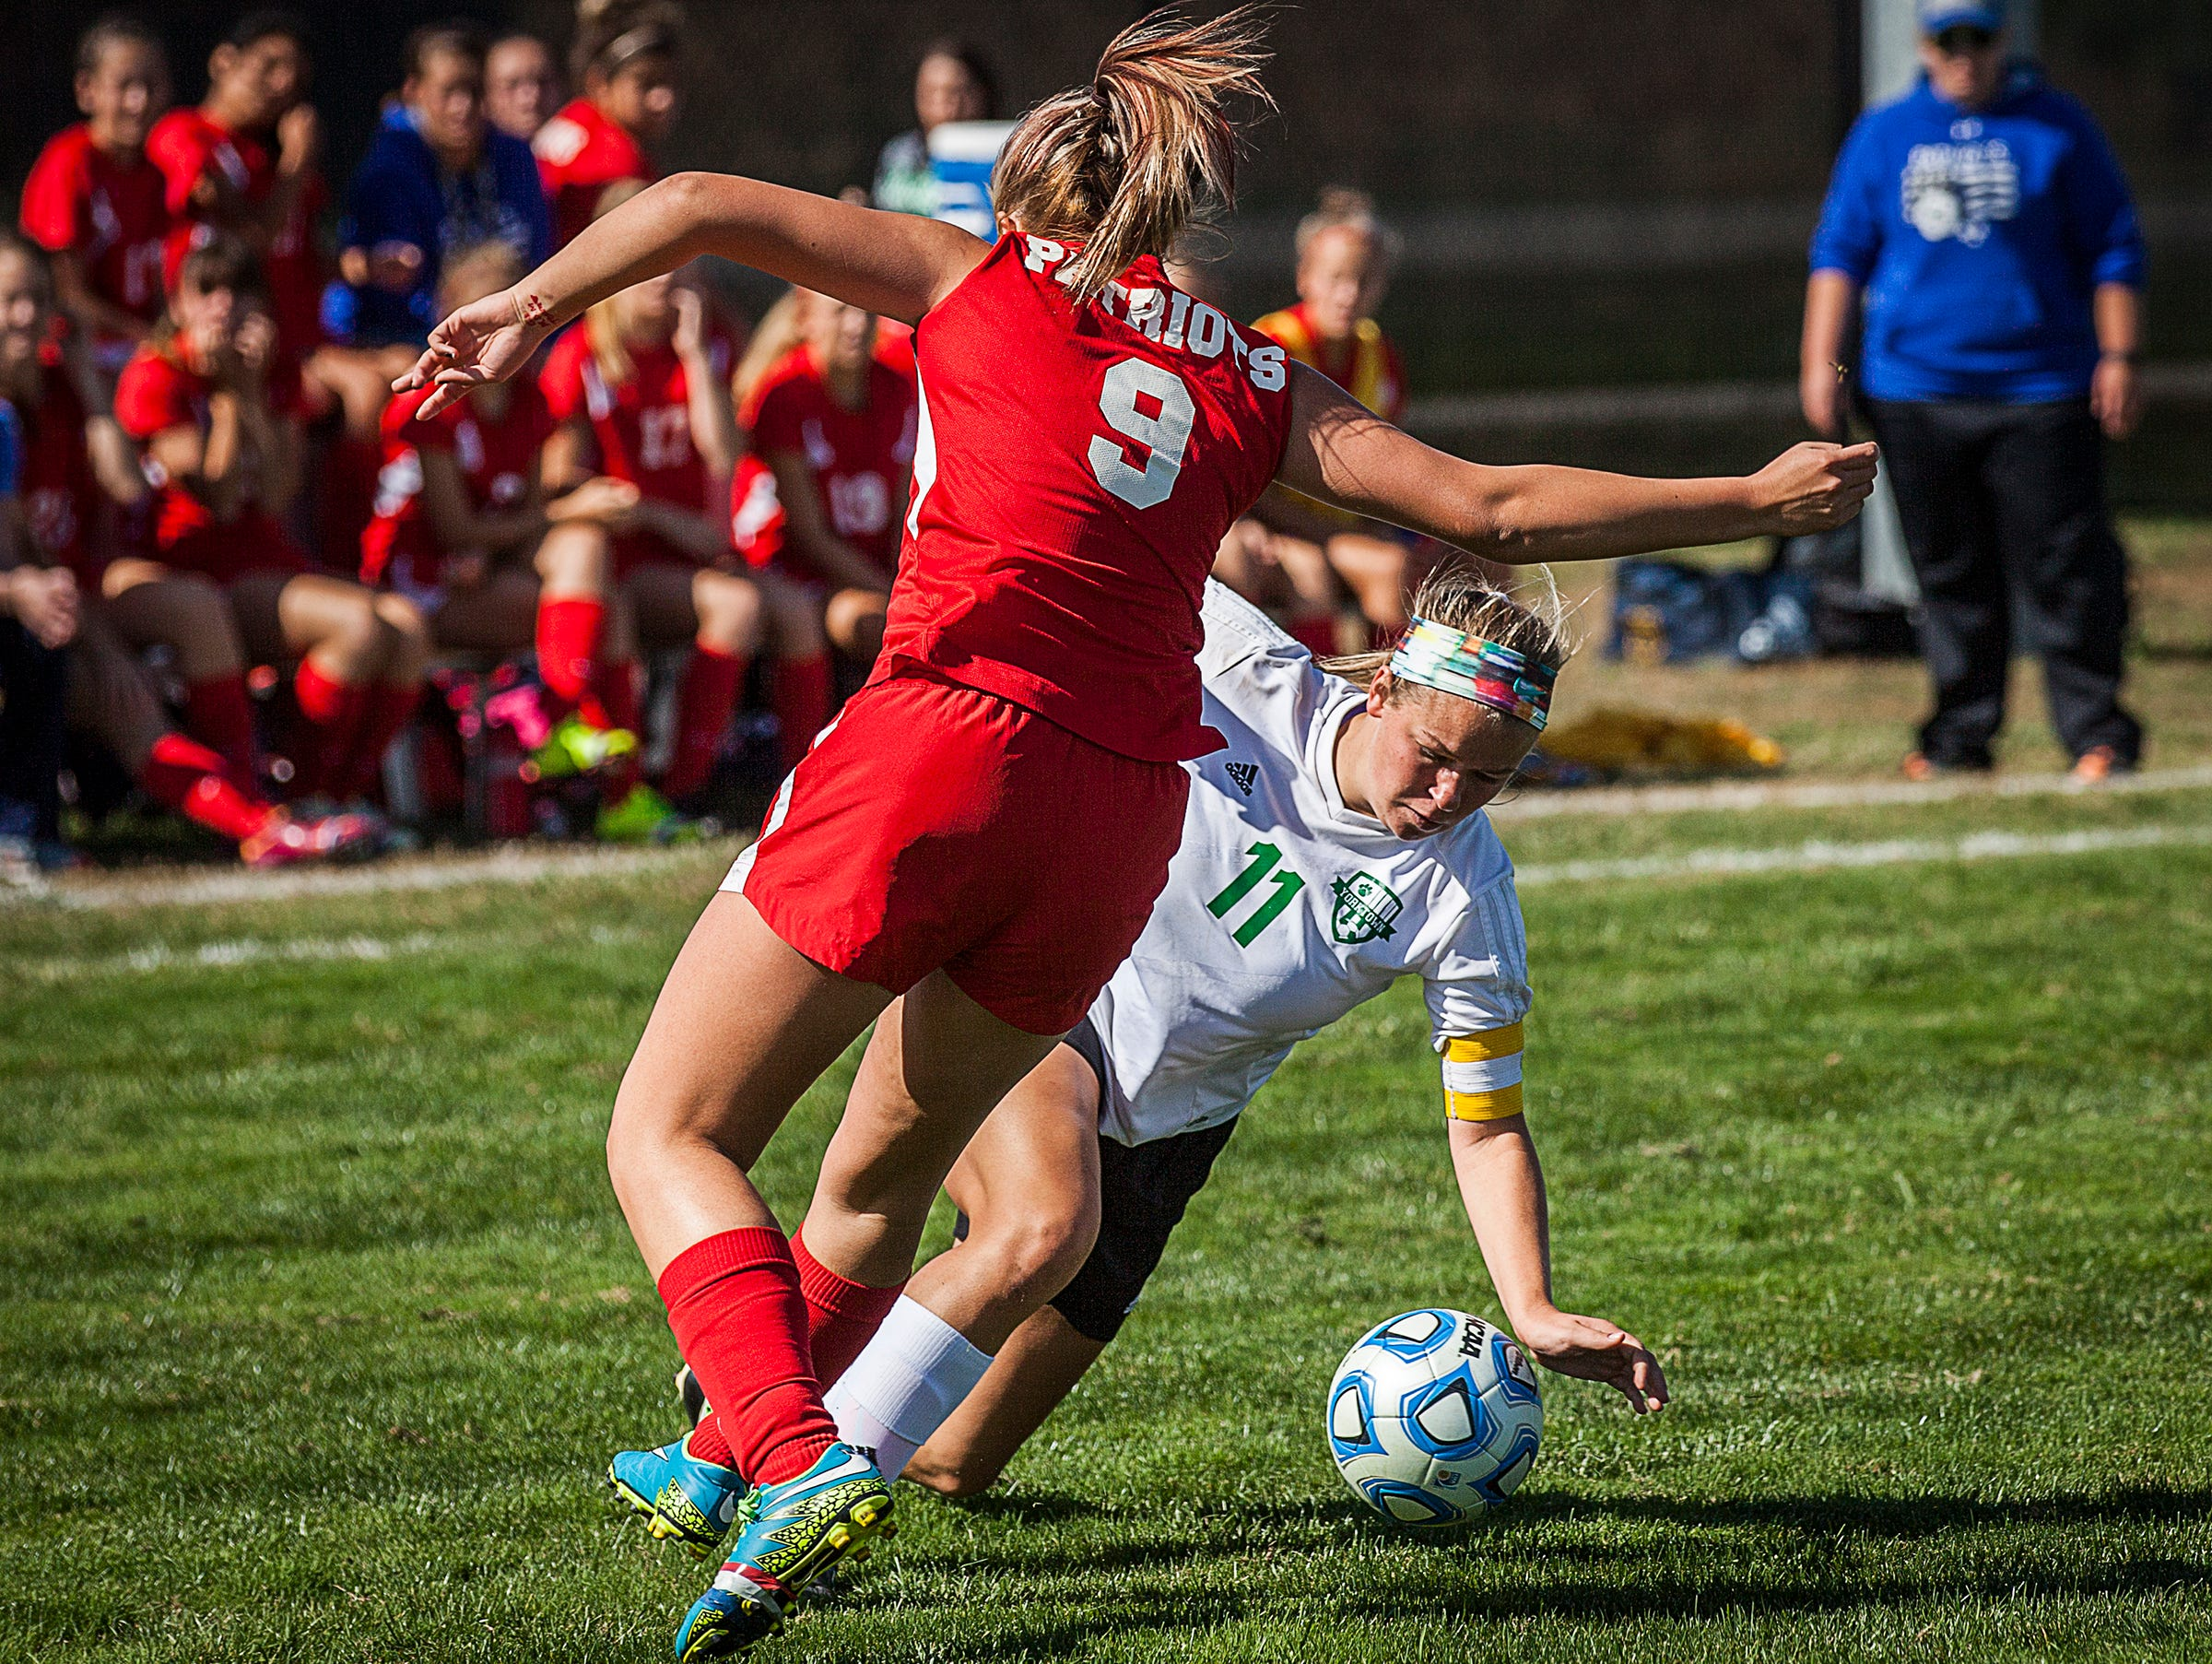 Yorktown's Katie Nixon fights past Jay County's defense during their game at the Yorktown Sports Park on Saturday, Oct. 10, 2015.